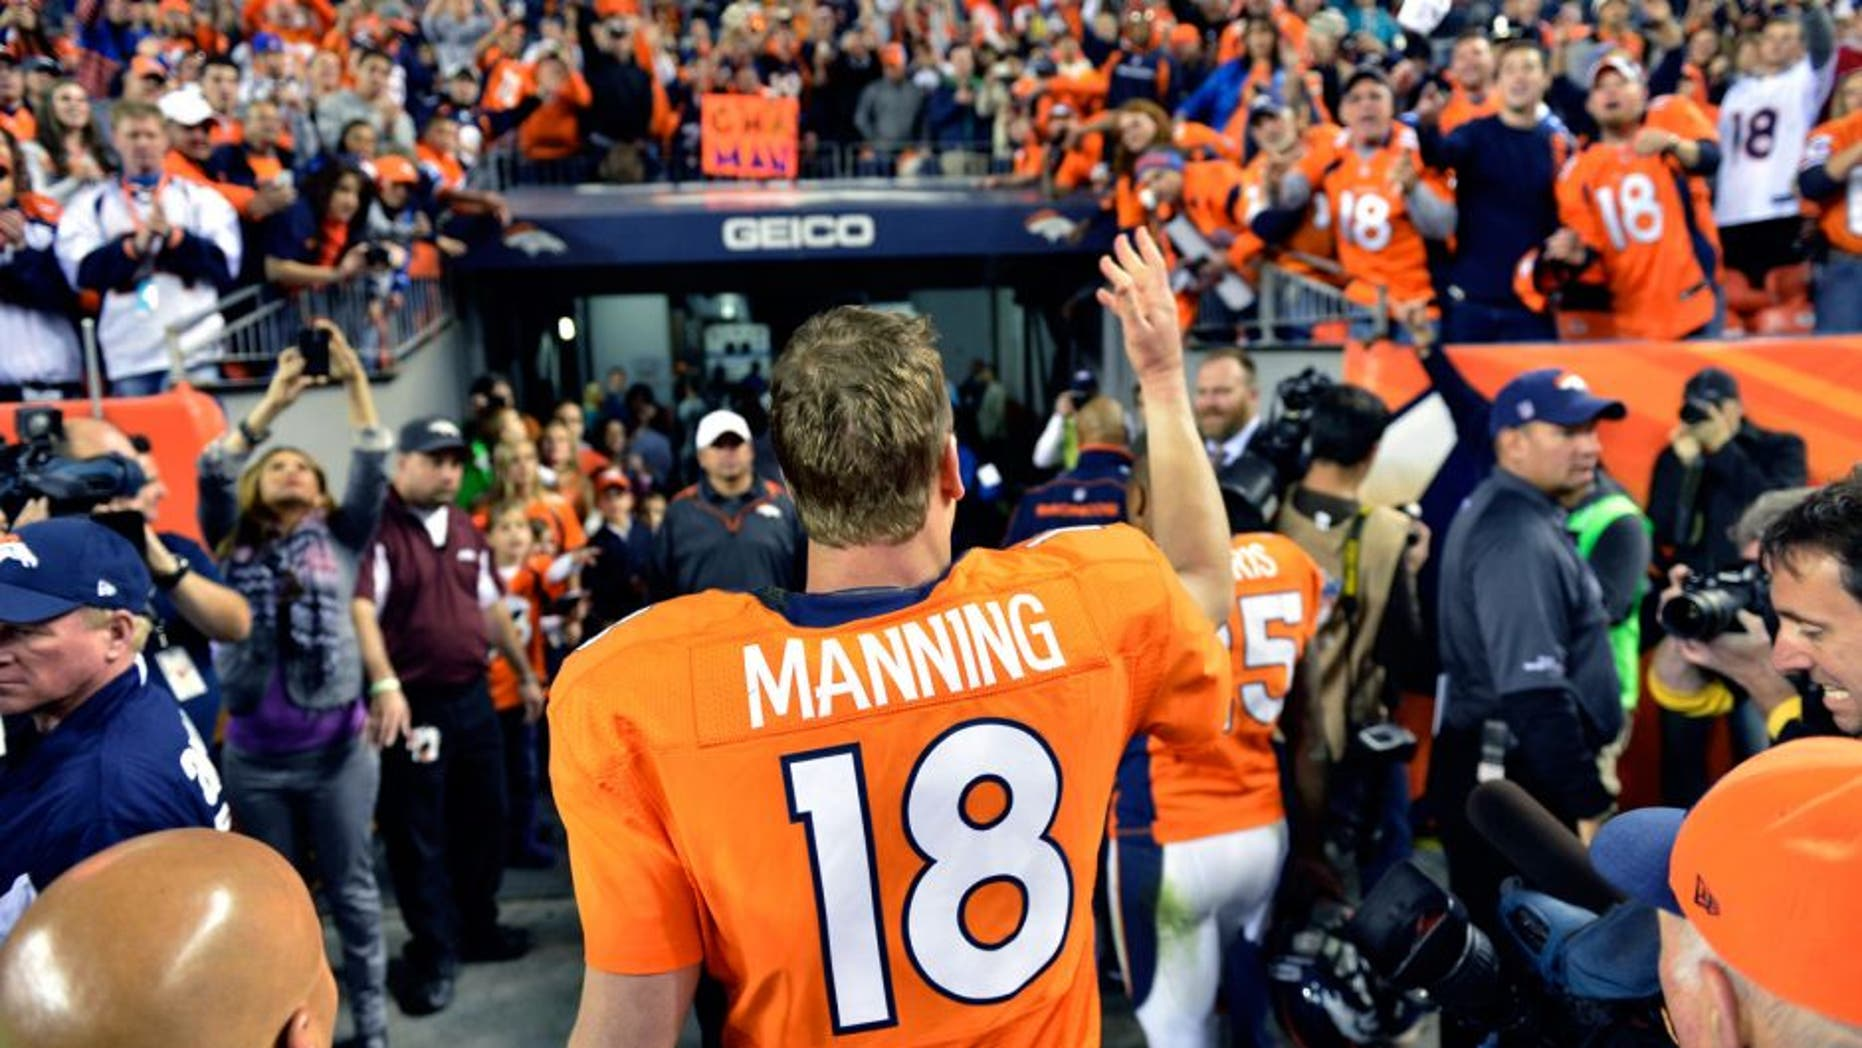 Dec 2 2012; Denver, CO, USA; Denver Broncos quarterback Peyton Manning (18) tosses a piece of equipment to the fans following the win over the Tampa Bay Buccaneers at Sports Authority Field. The Broncos defeated the Buccaneers 31-23. Mandatory Credit: Ron Chenoy-USA TODAY Sports